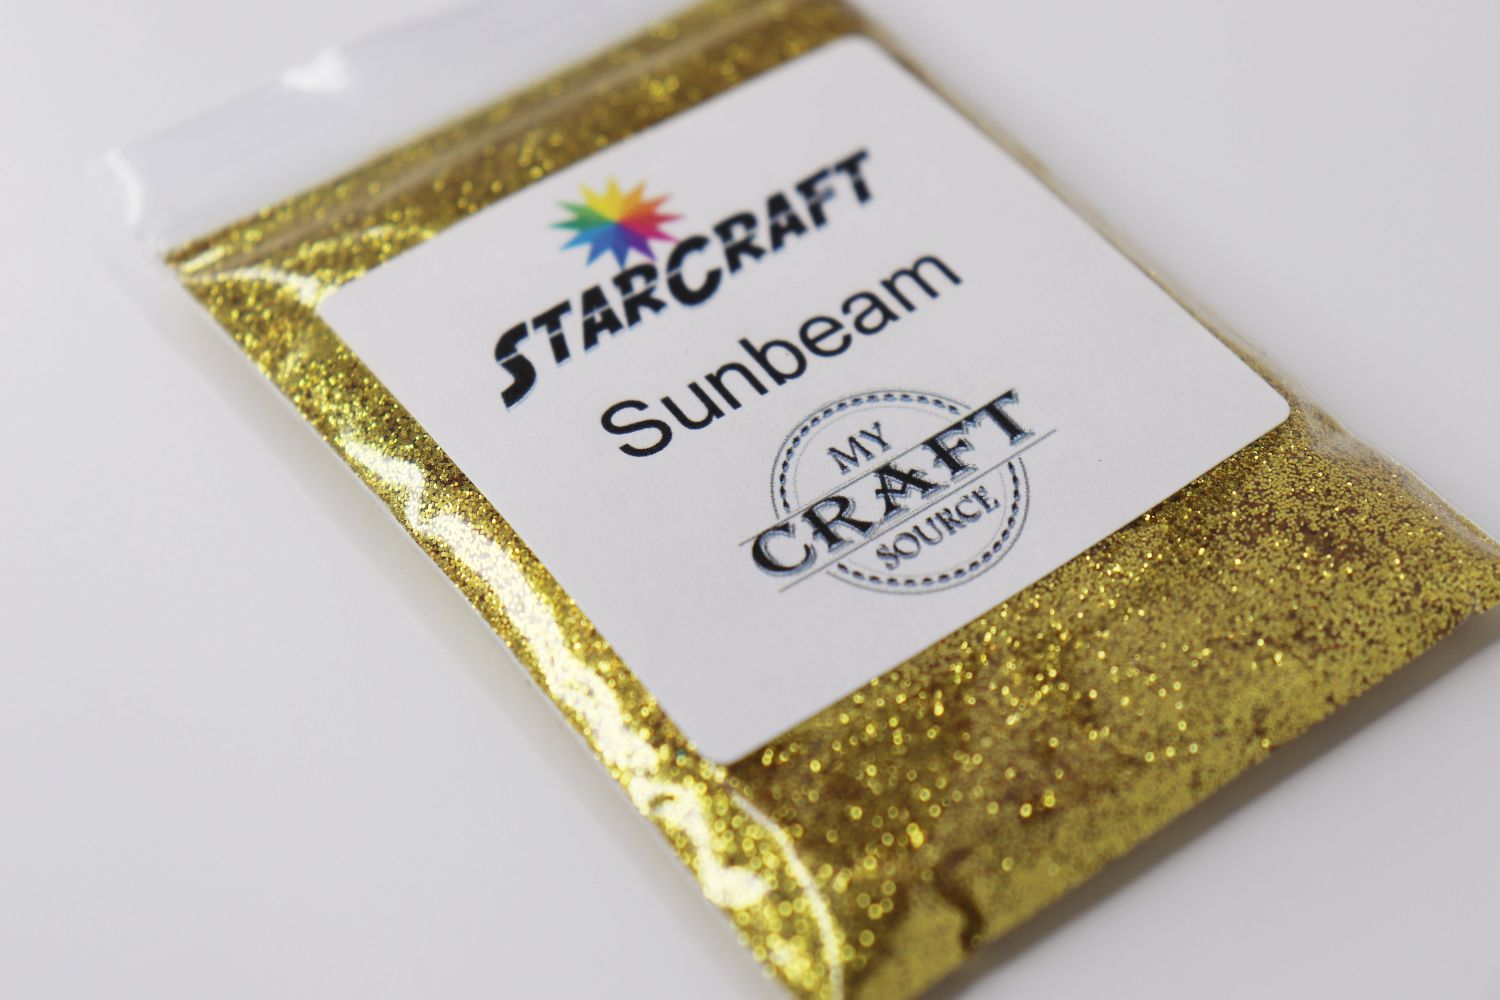 StarCraft Metallic Glitter - Sunbeam - 0.5 oz